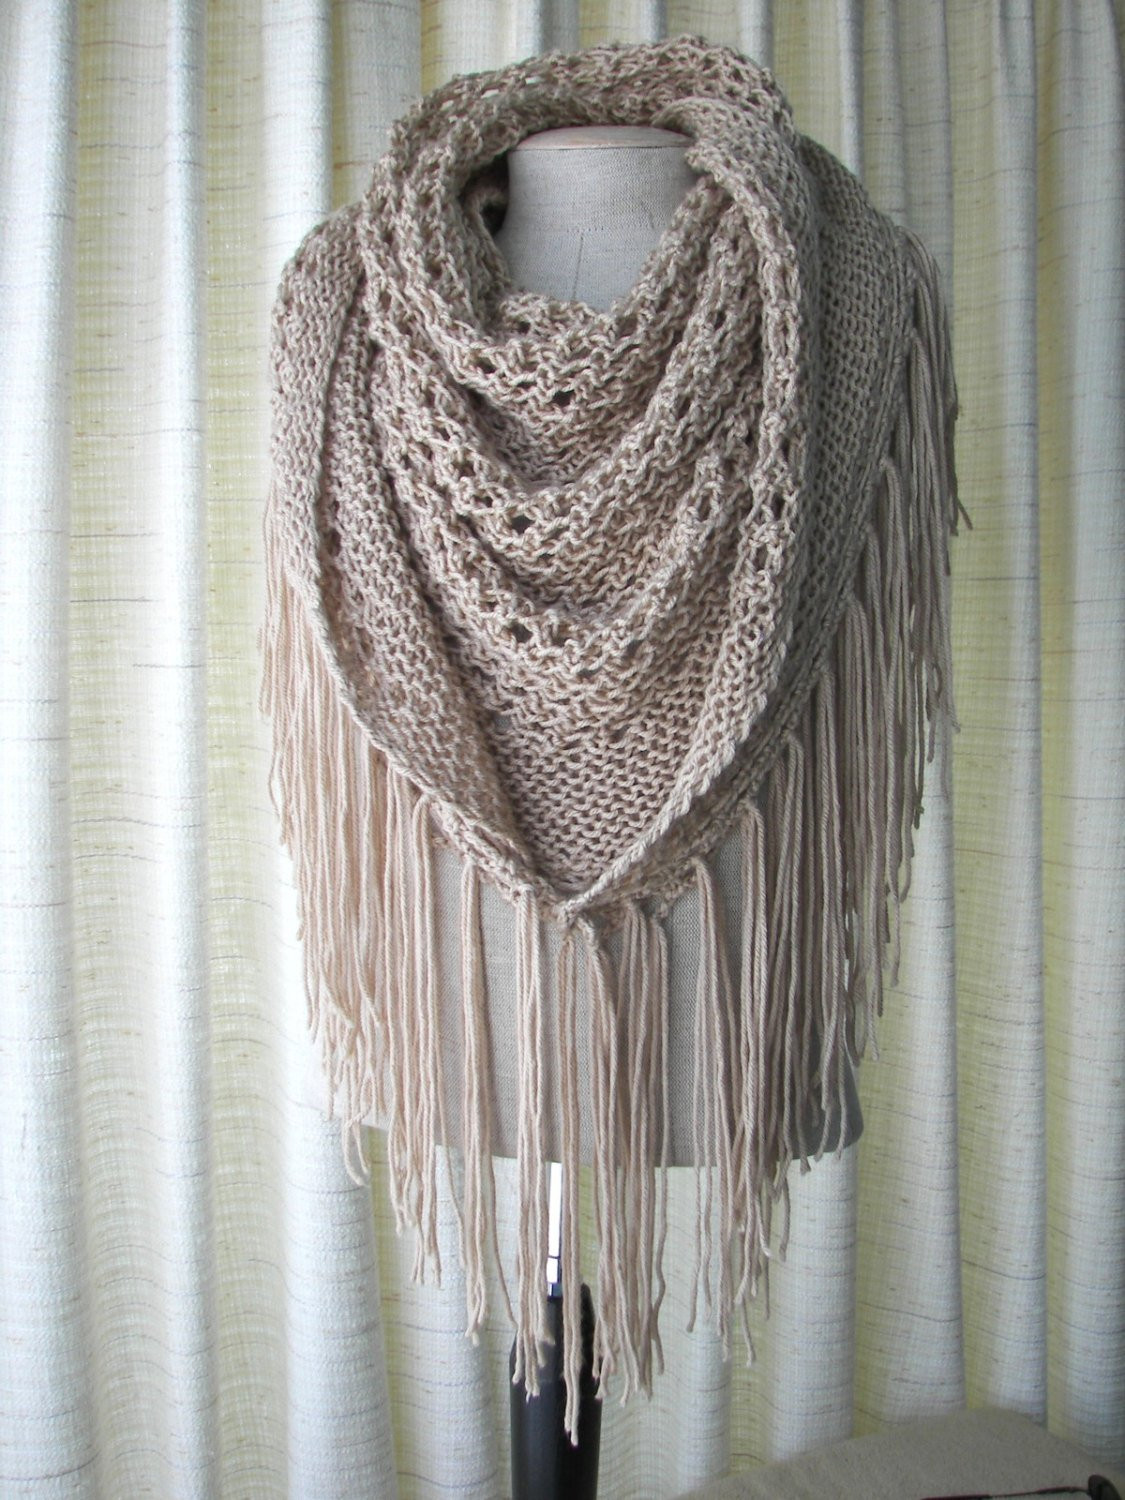 Inspirational Cappuccino Hand Knit Shawl Triangle Scarf Fringes In Anti Pill Knitted Shawl Wrap Of Superb 49 Images Knitted Shawl Wrap